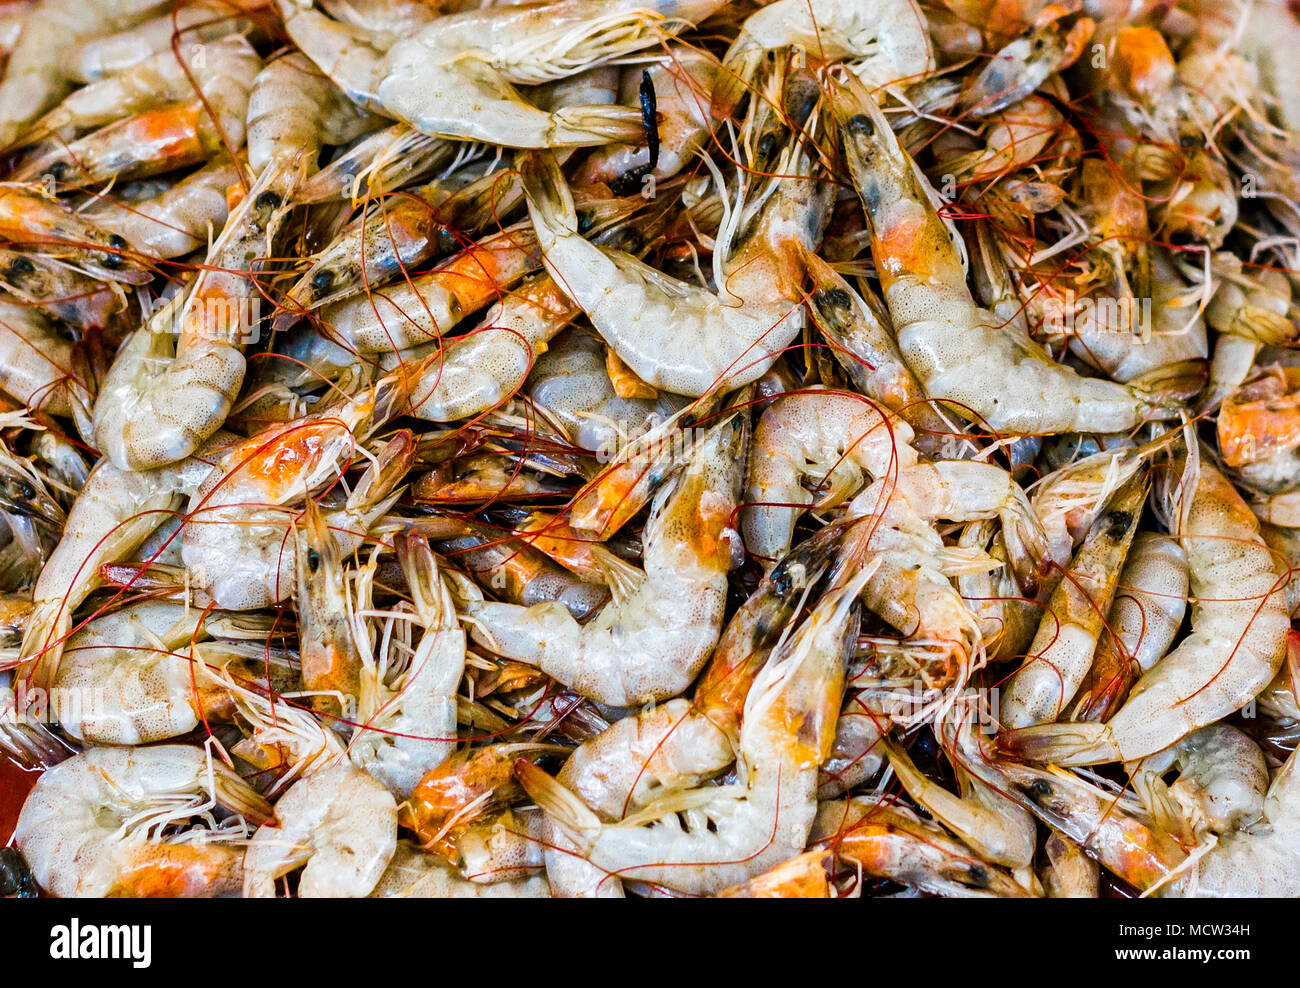 heap of golden white shrimps prawn lobster seafood for sale in fish market - Stock Image